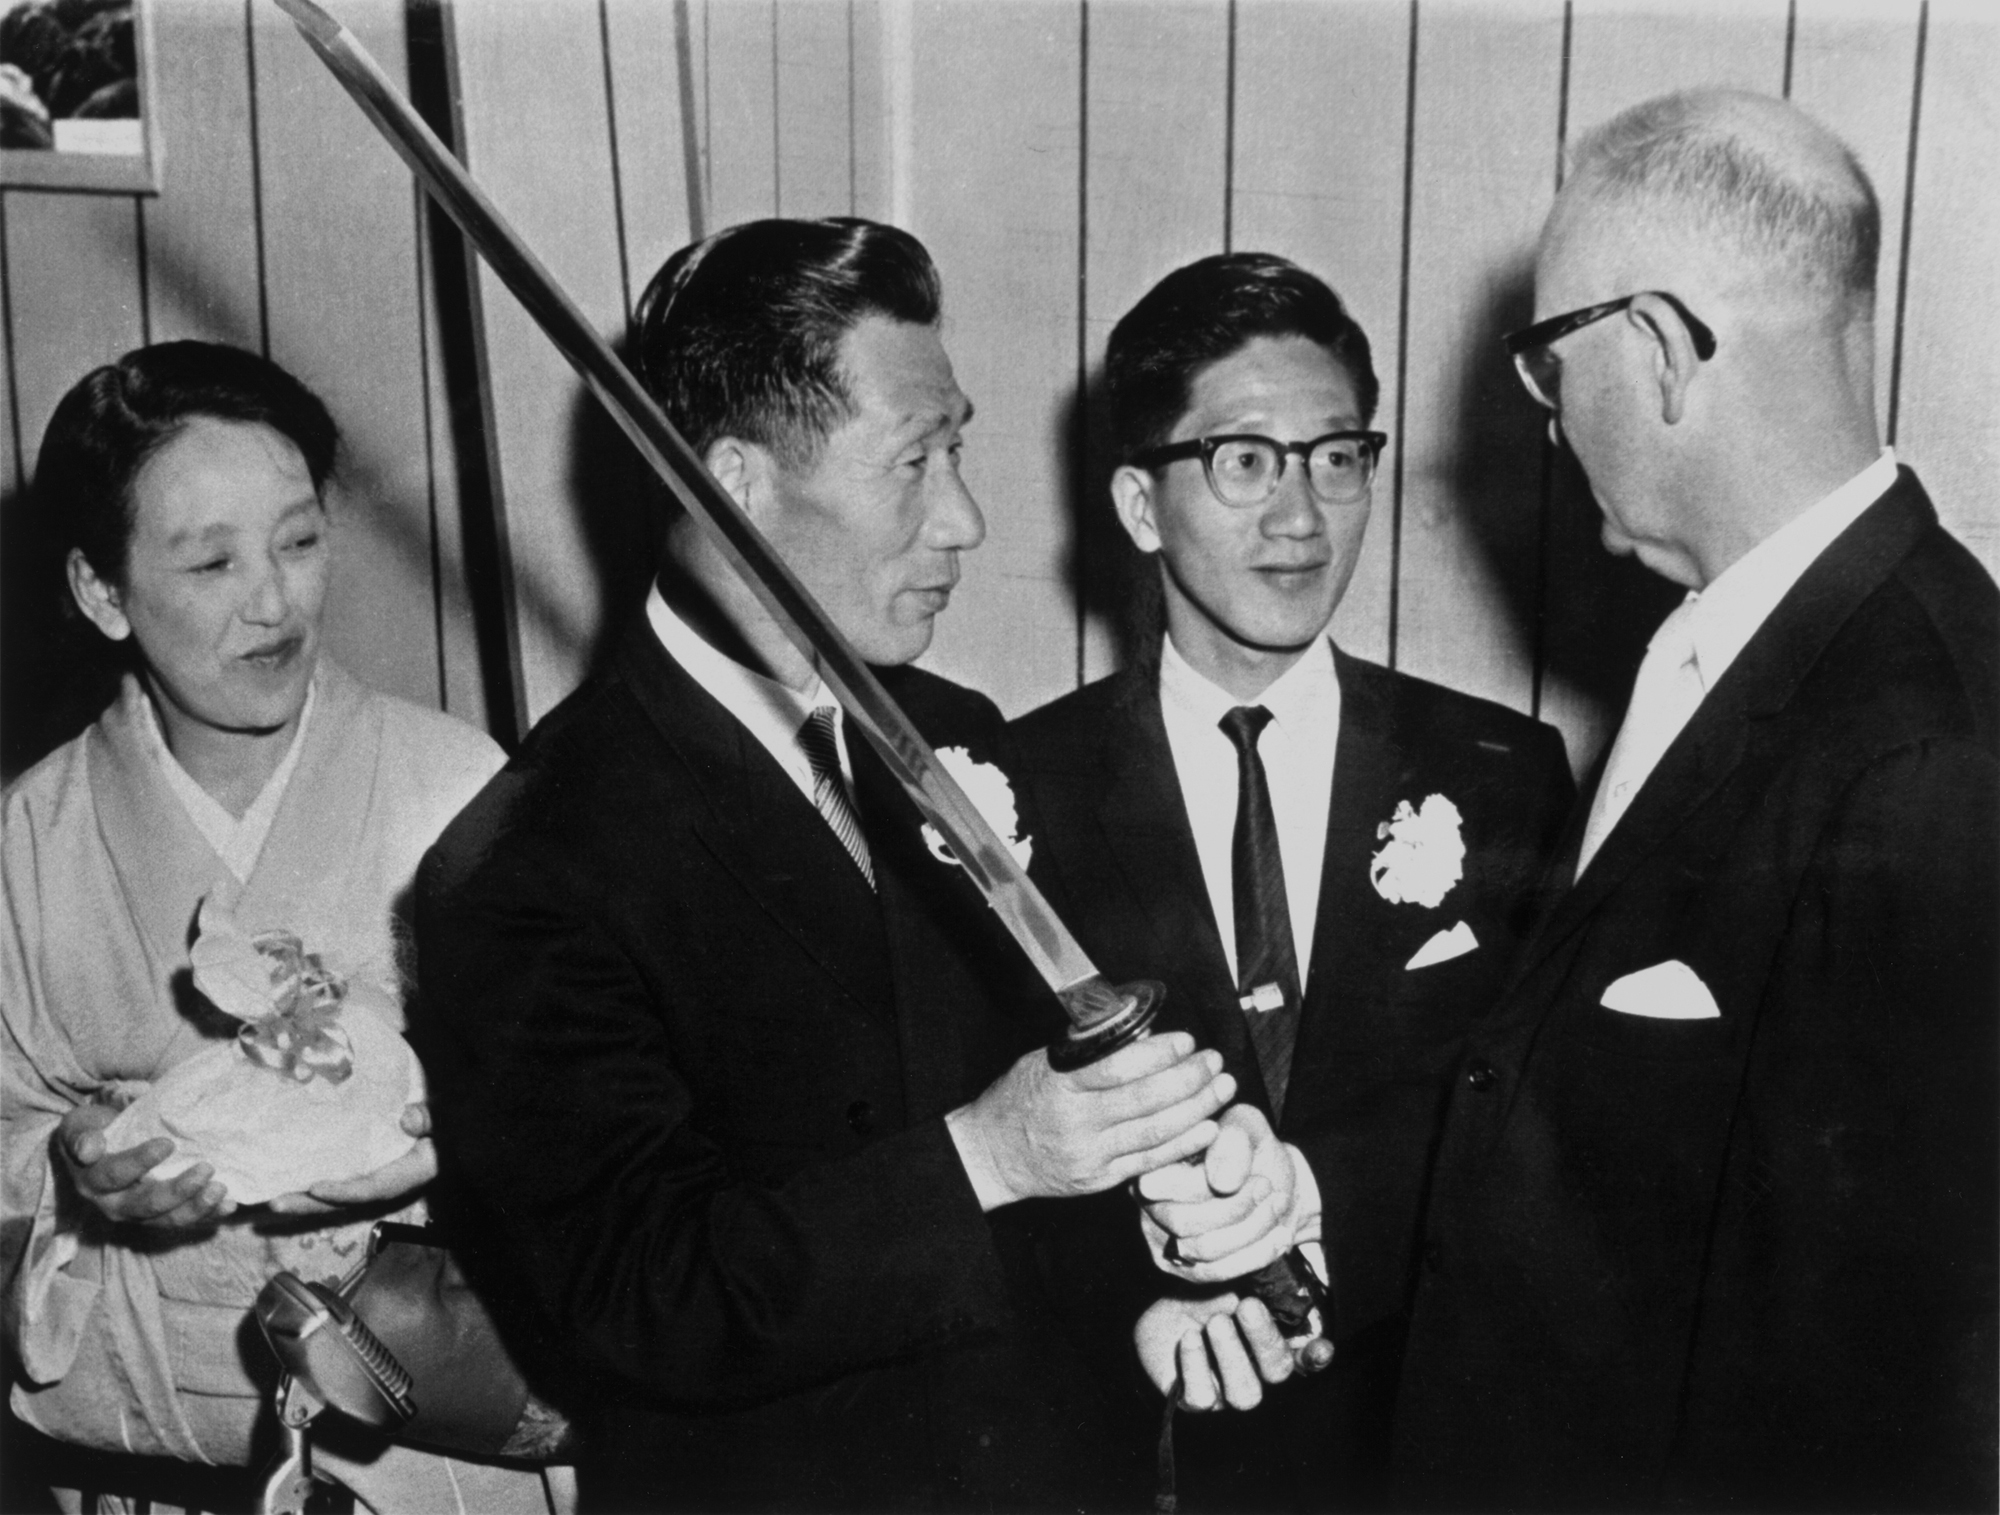 Nobuo Fujita and his family present samurai sword to Mayor Campbell, 1962